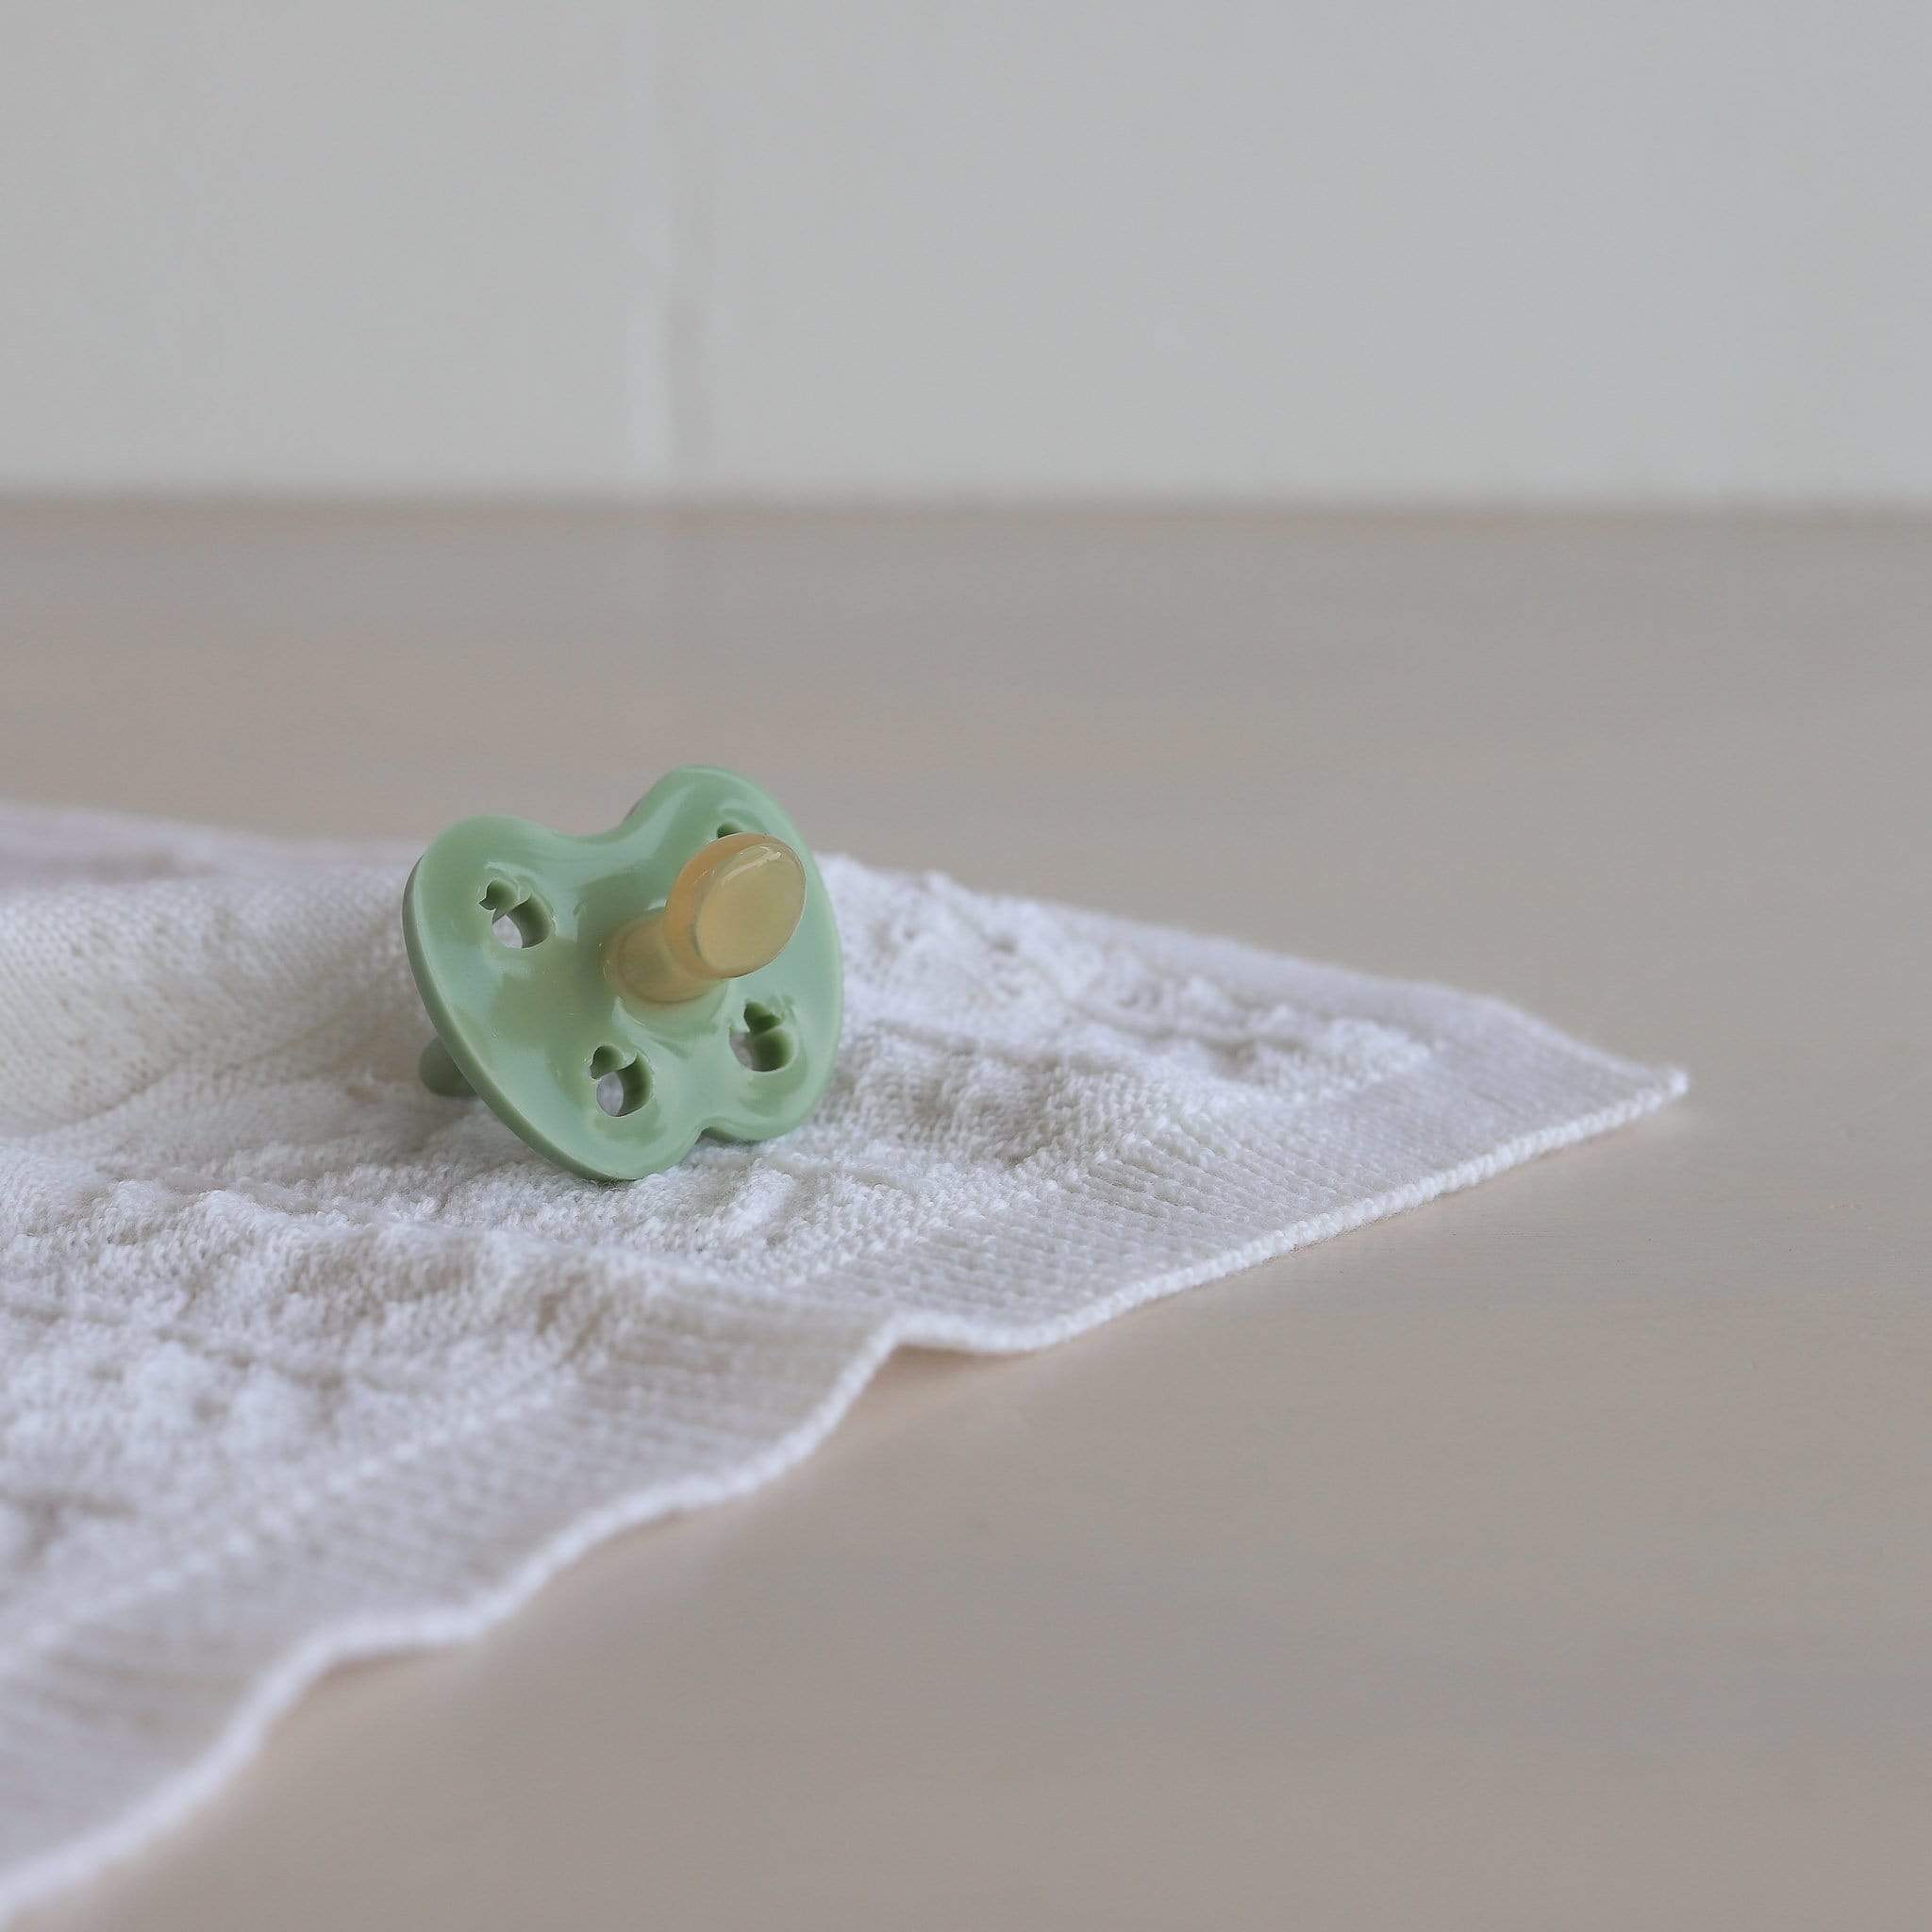 Hevea Natural Rubber Orthodontic Pacifier - Moss Green 3-36m